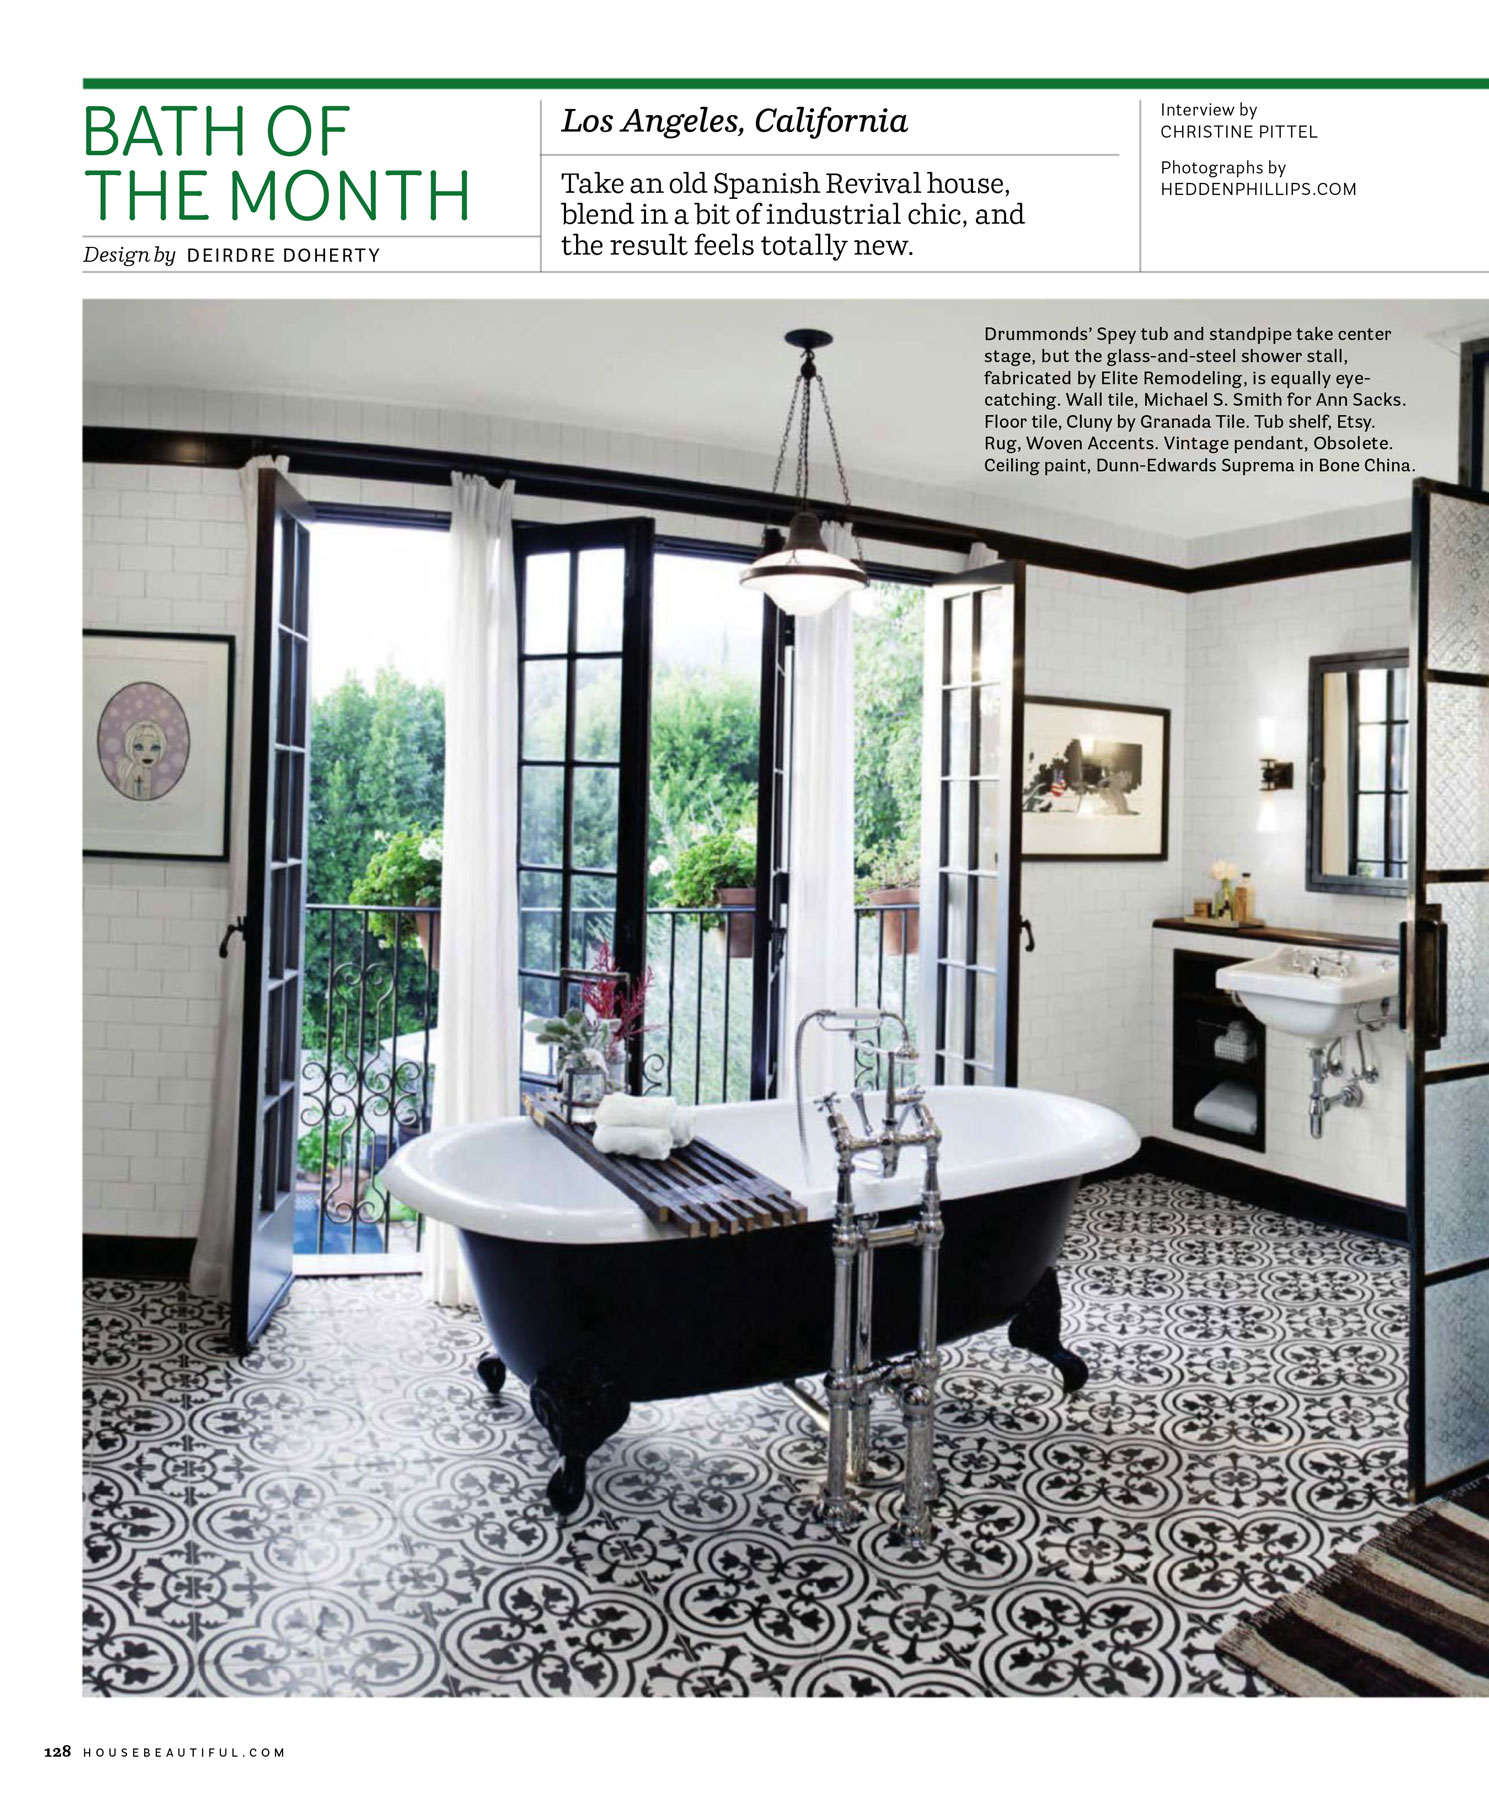 Published Interior Designer Los Angeles Black & White Bathroom Tile Floor Clawfoot Tub French Windows Wall Tile Chandelier